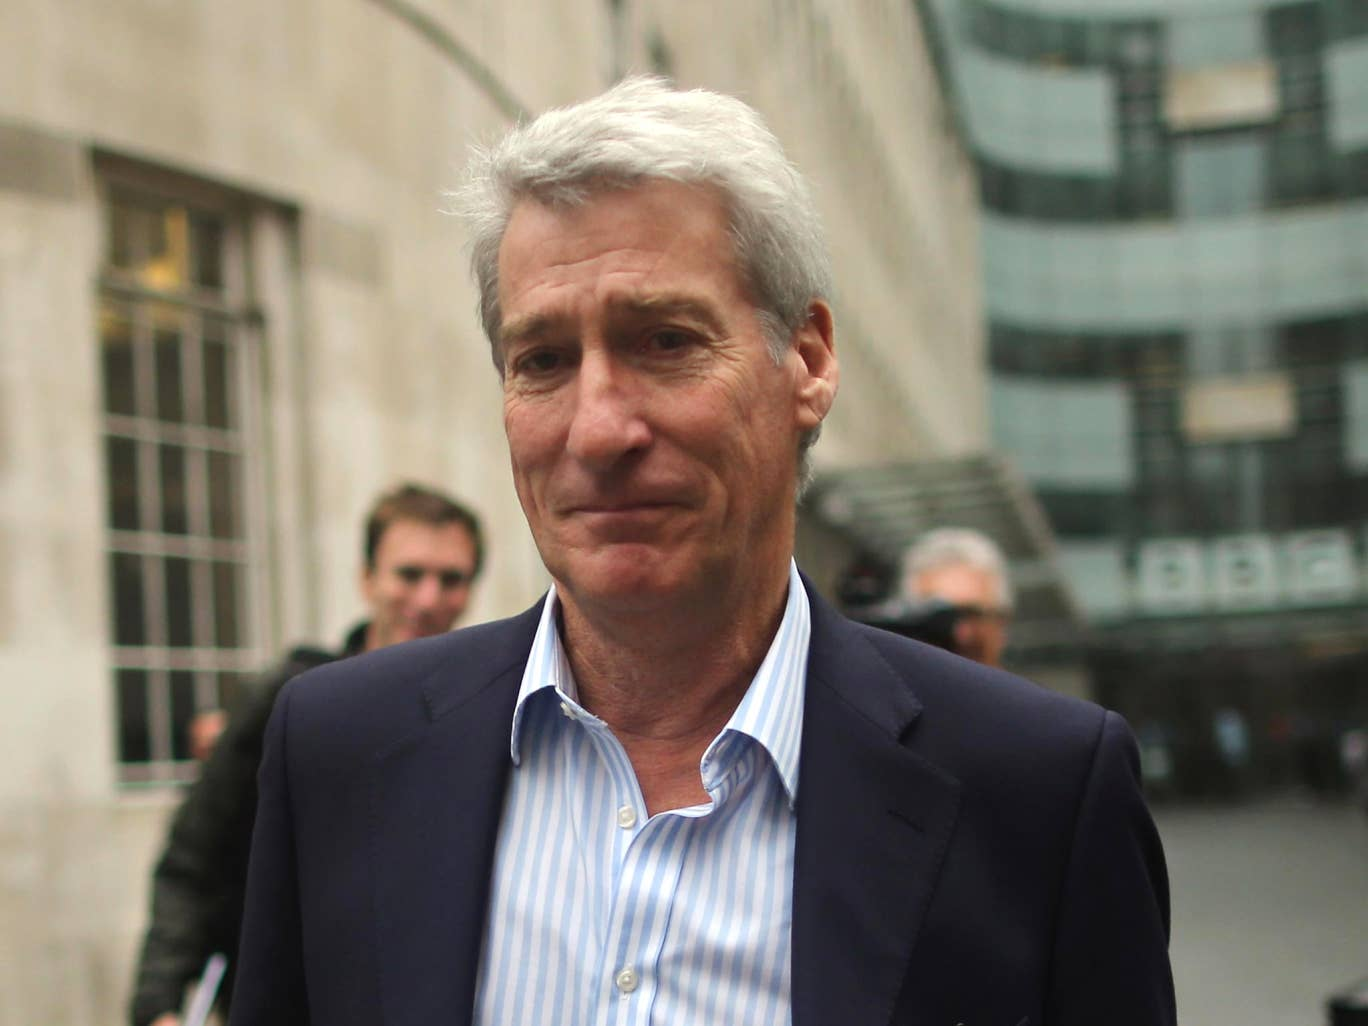 Not convinced by Paxman's Edinburgh Fringe booking? Neither is he